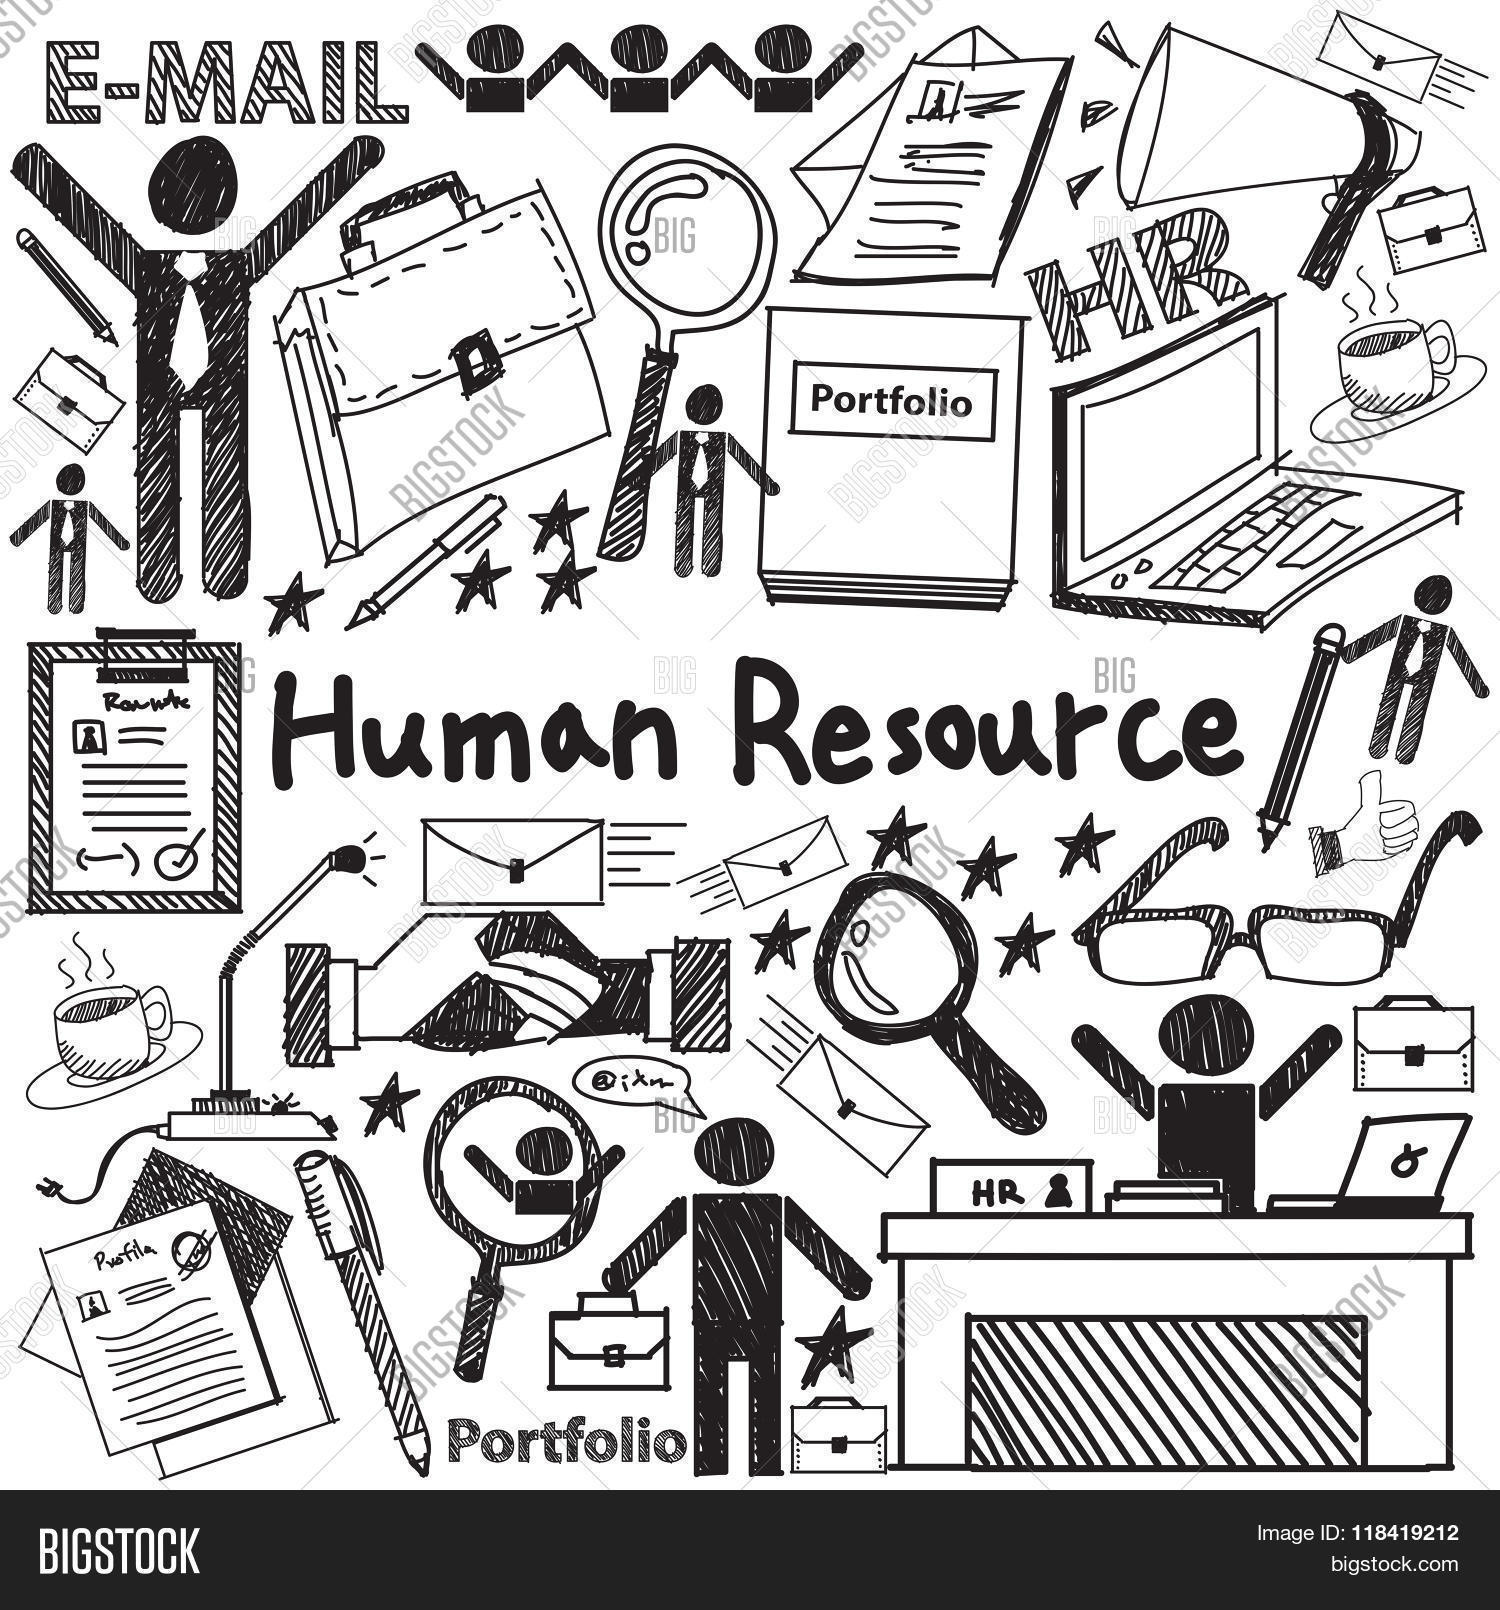 Human Resource Vector Photo Free Trial Bigstock